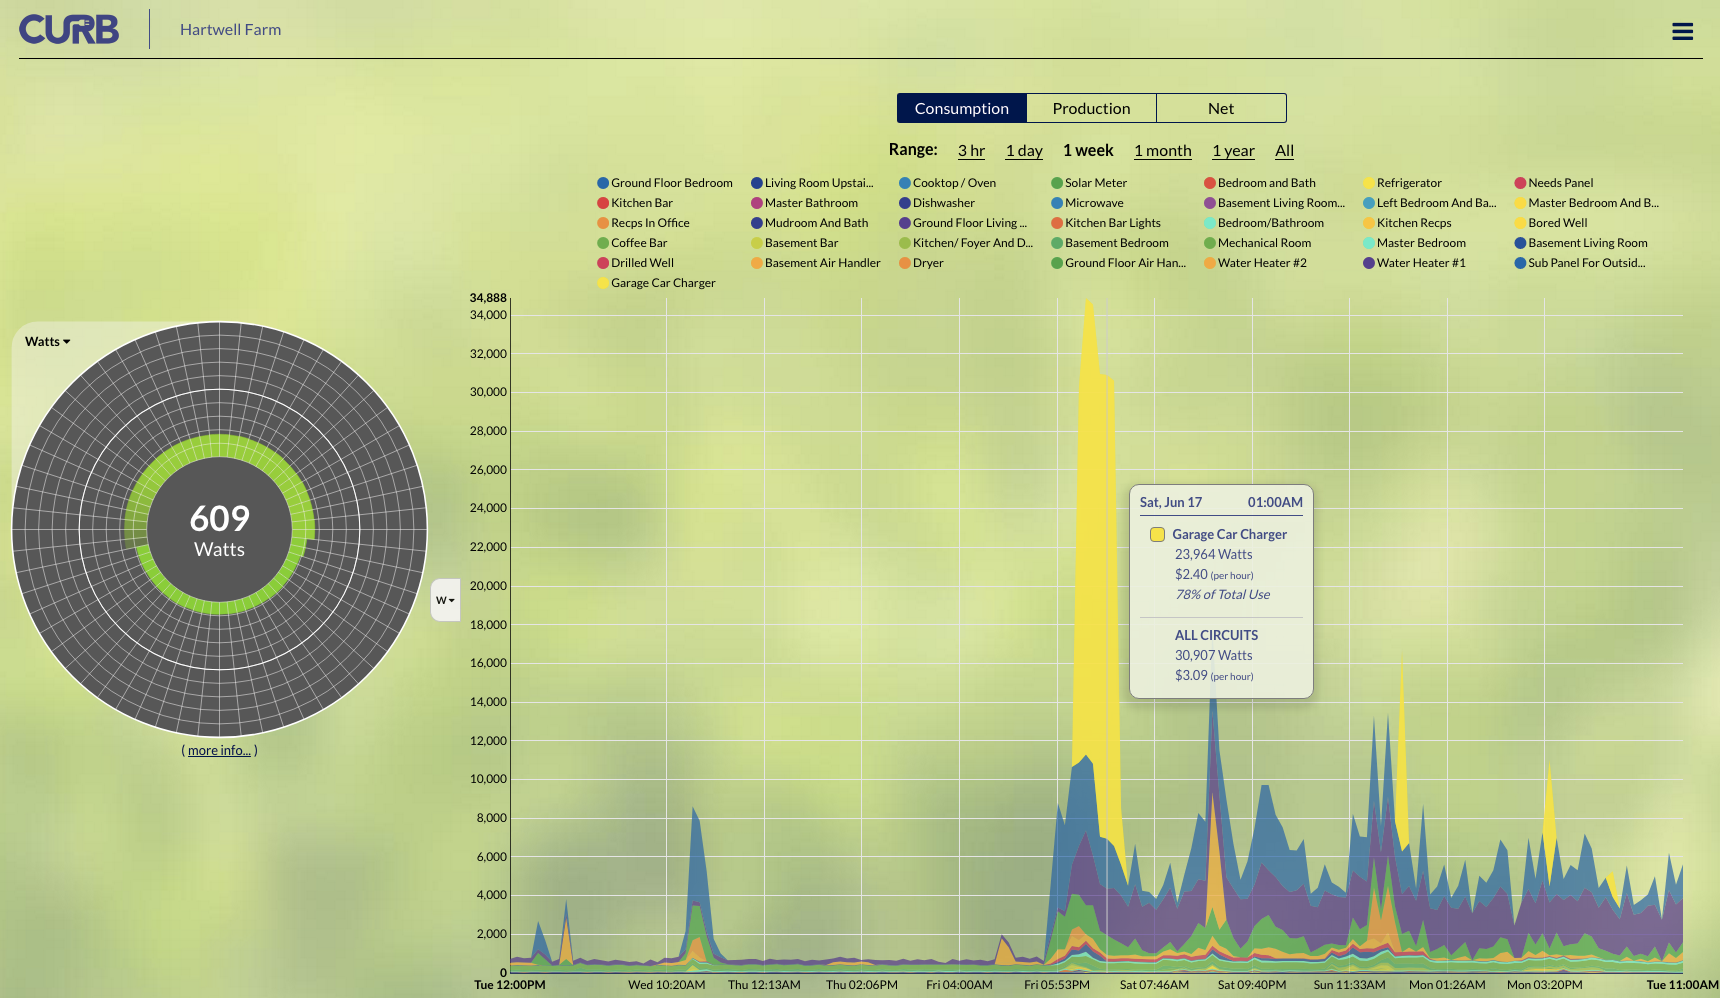 power consumption graph by CURB mapping solar energy use